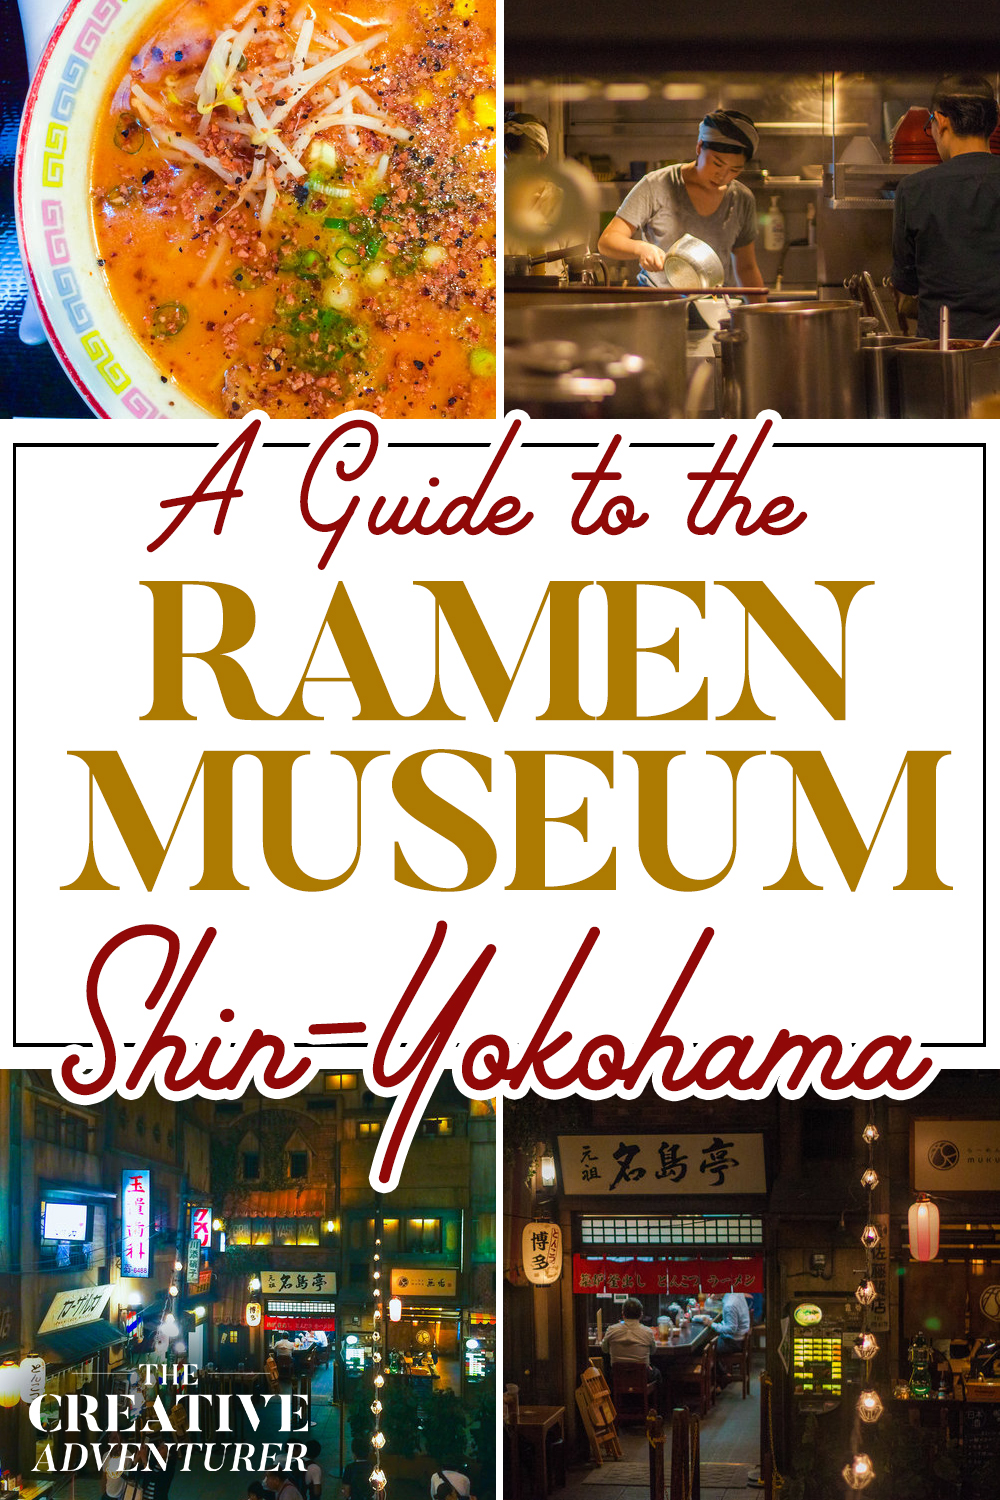 A Guide to the Shin-Yokohama Ramen Museum